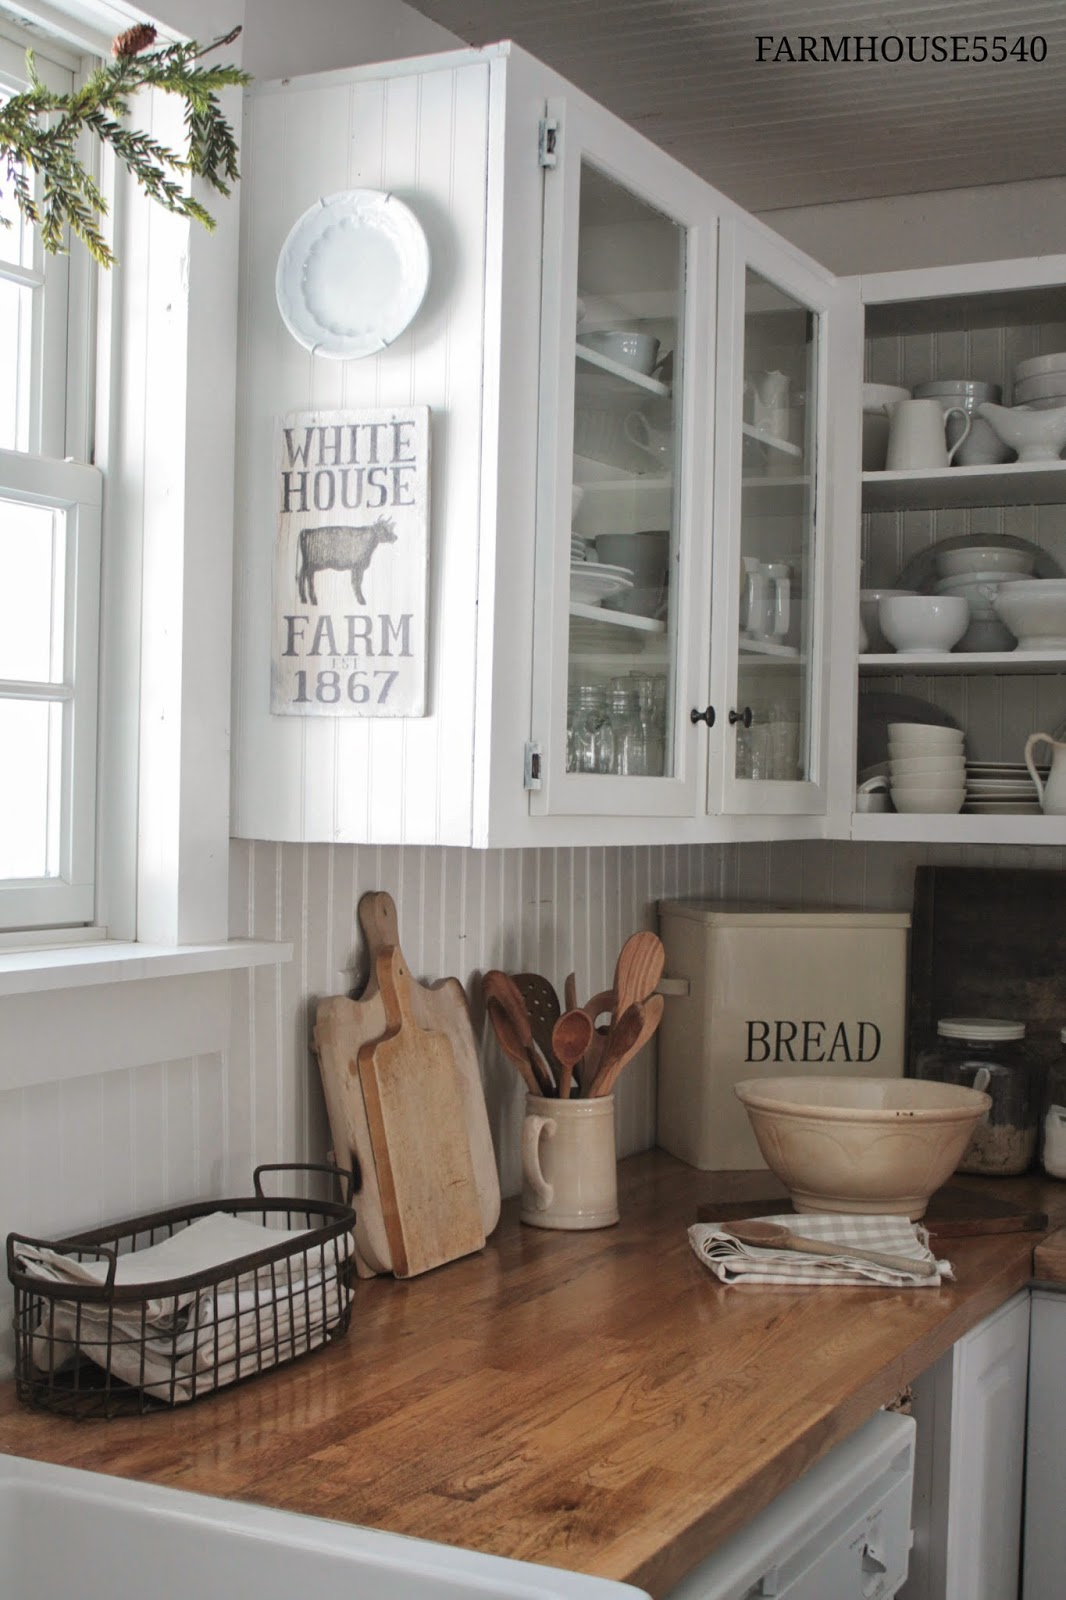 farmhouse kitchen ideas on a budget 7 ideas for a farmhouse inspired kitchen on a budget 26643